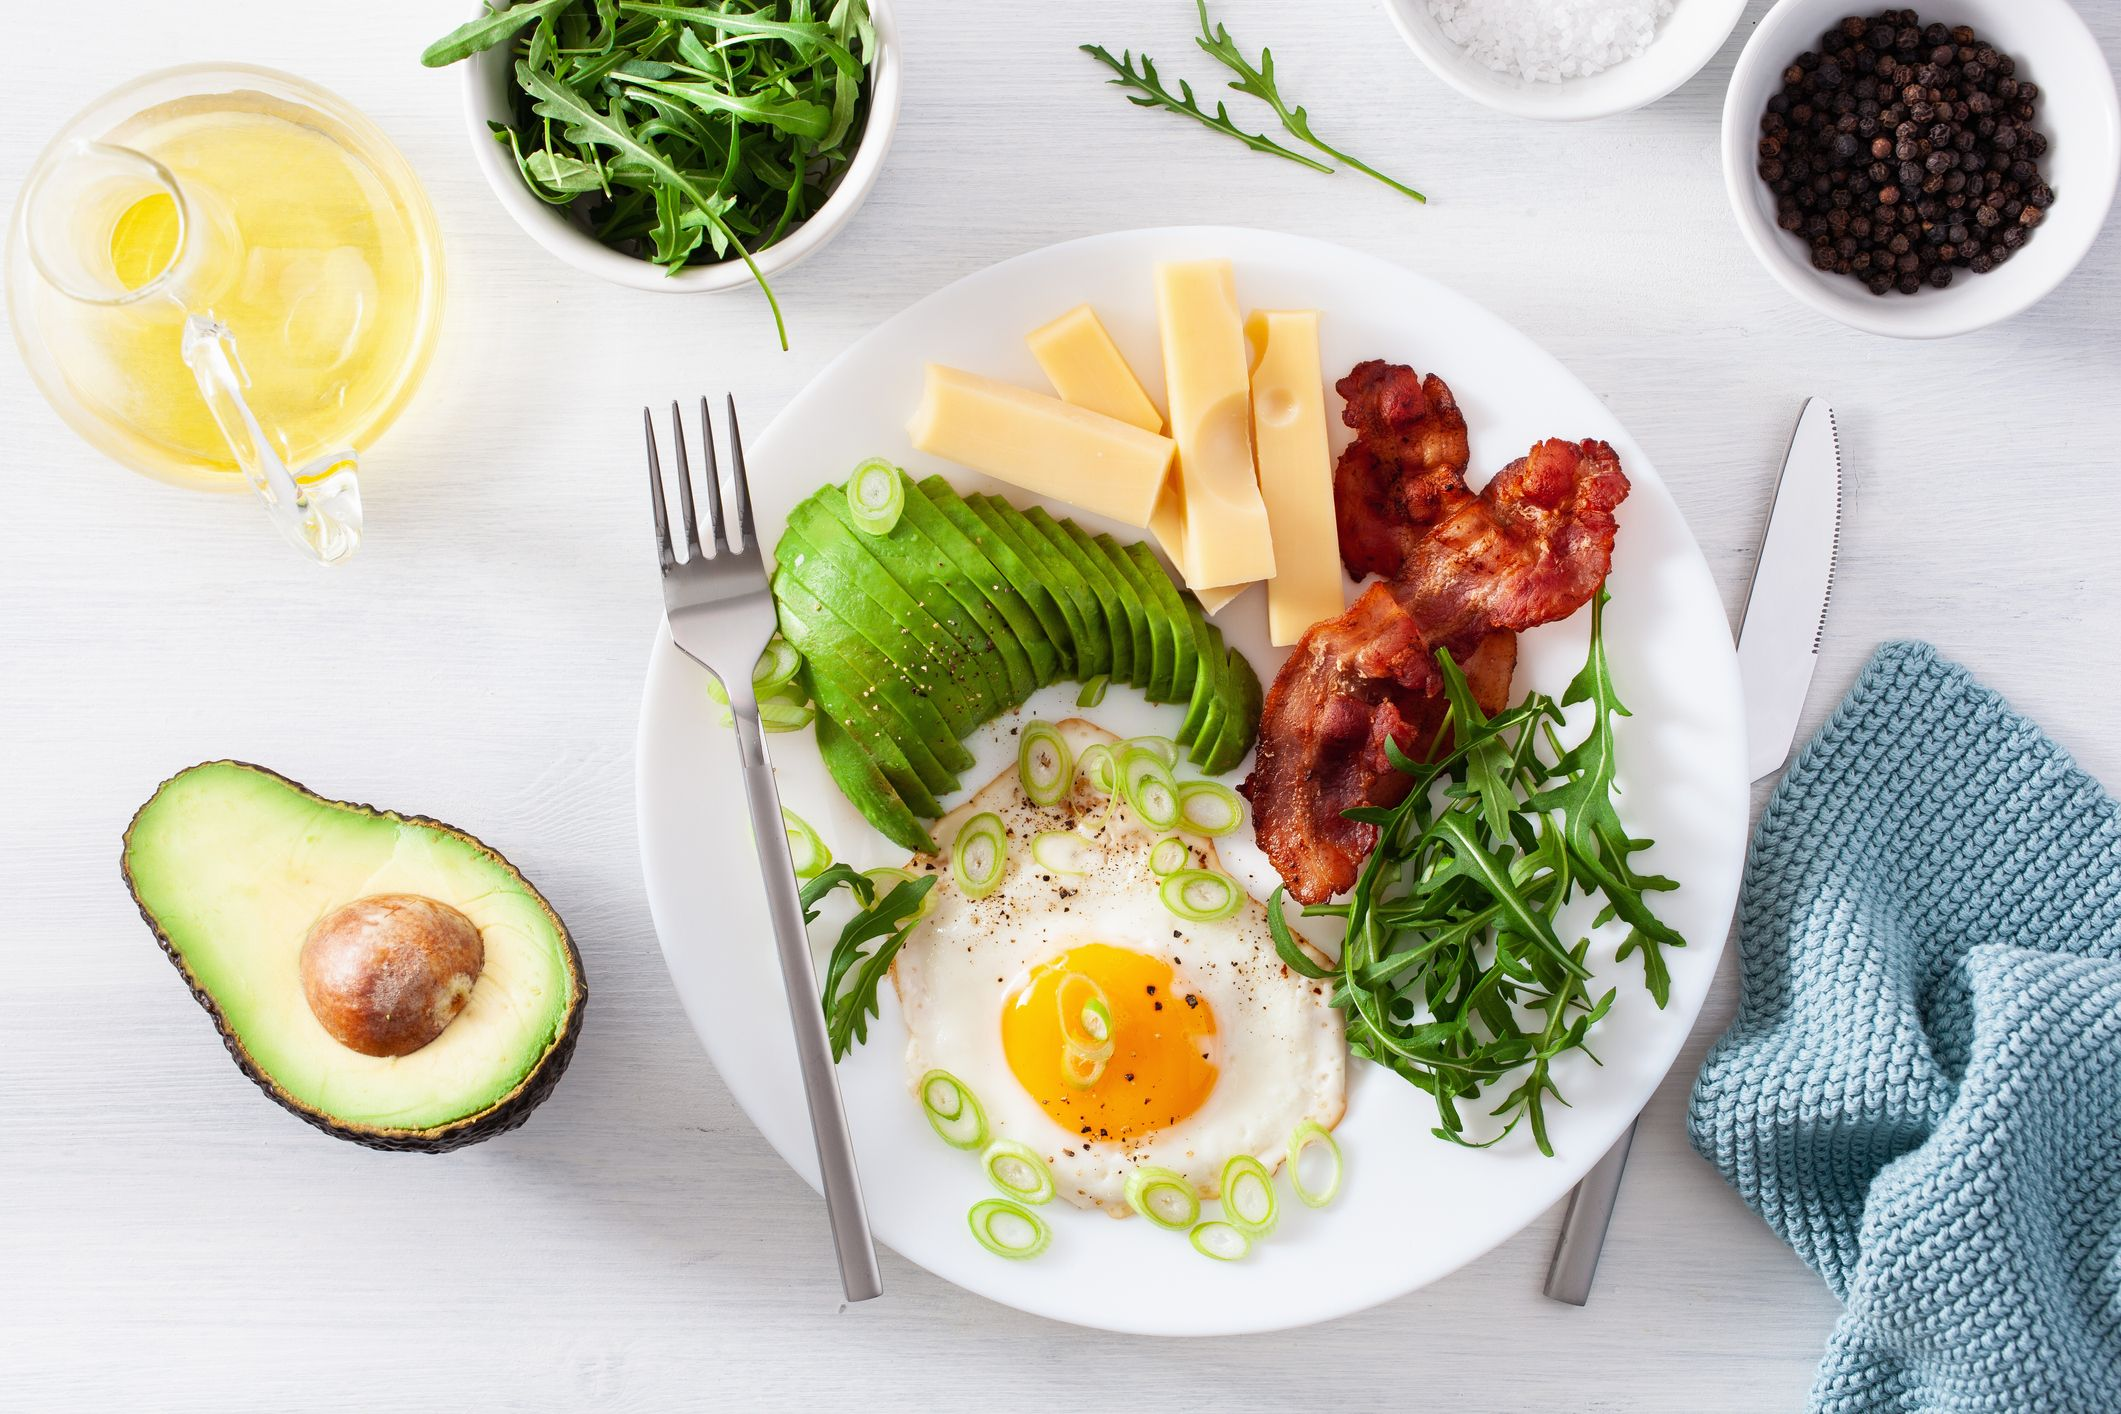 Low-Carb Vs. Keto: What's The Diff And Which Is Better?